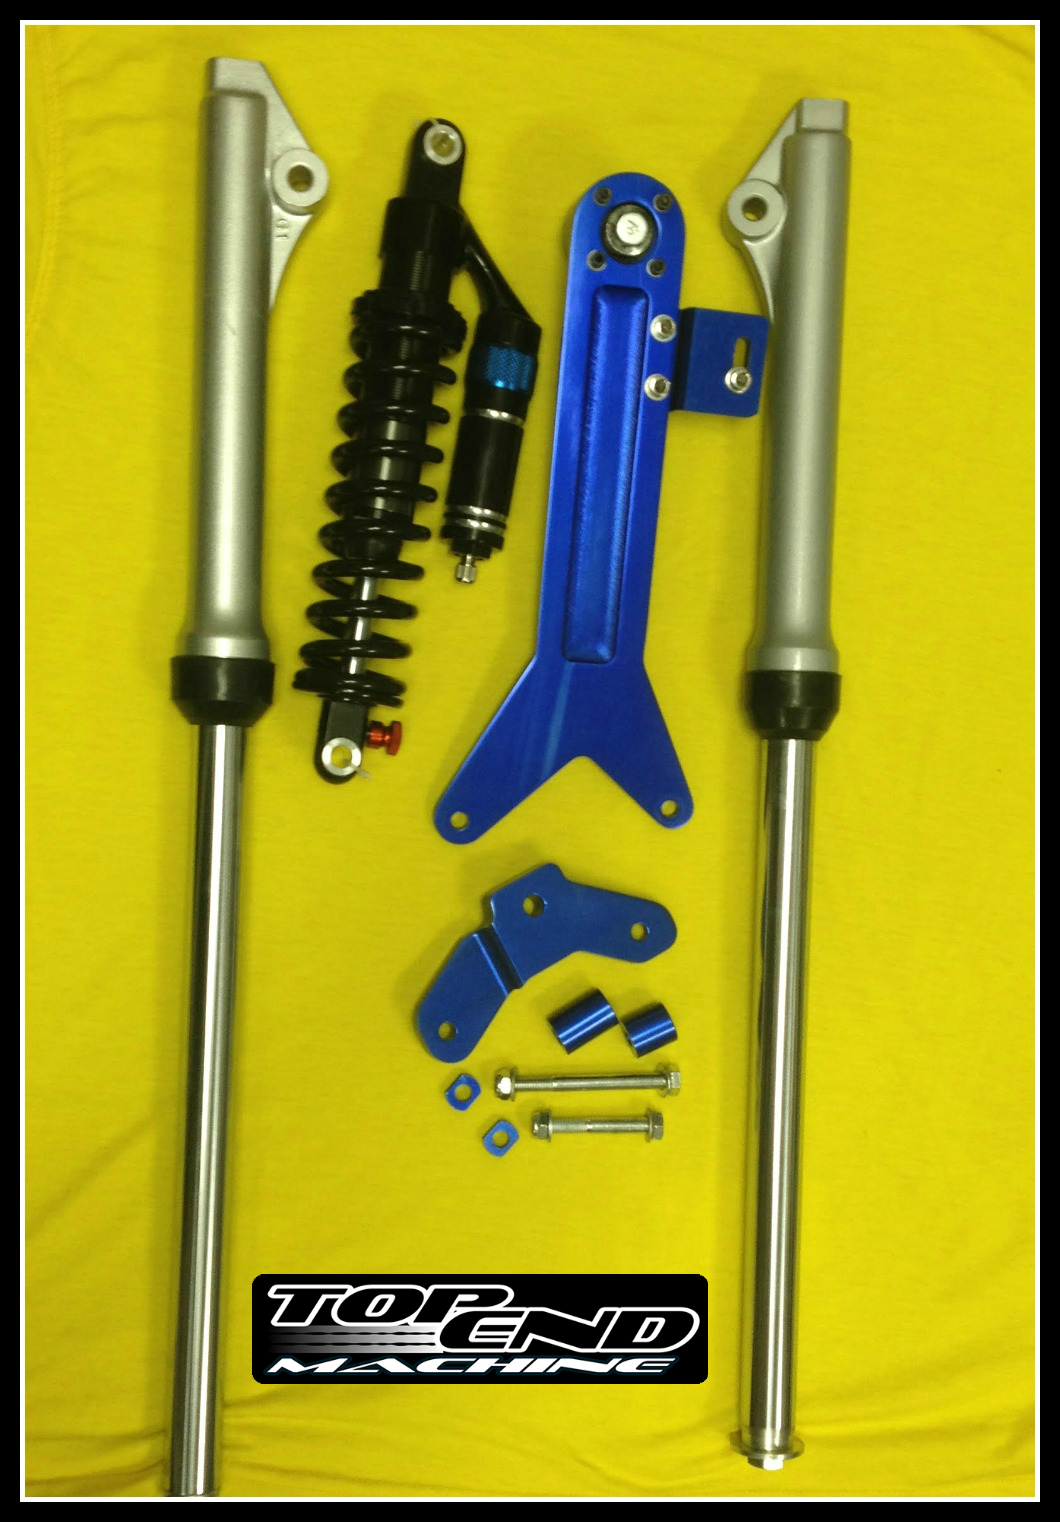 pw50-single-shock-rear-suspenison-with-forks - PWOnly com - Yamaha